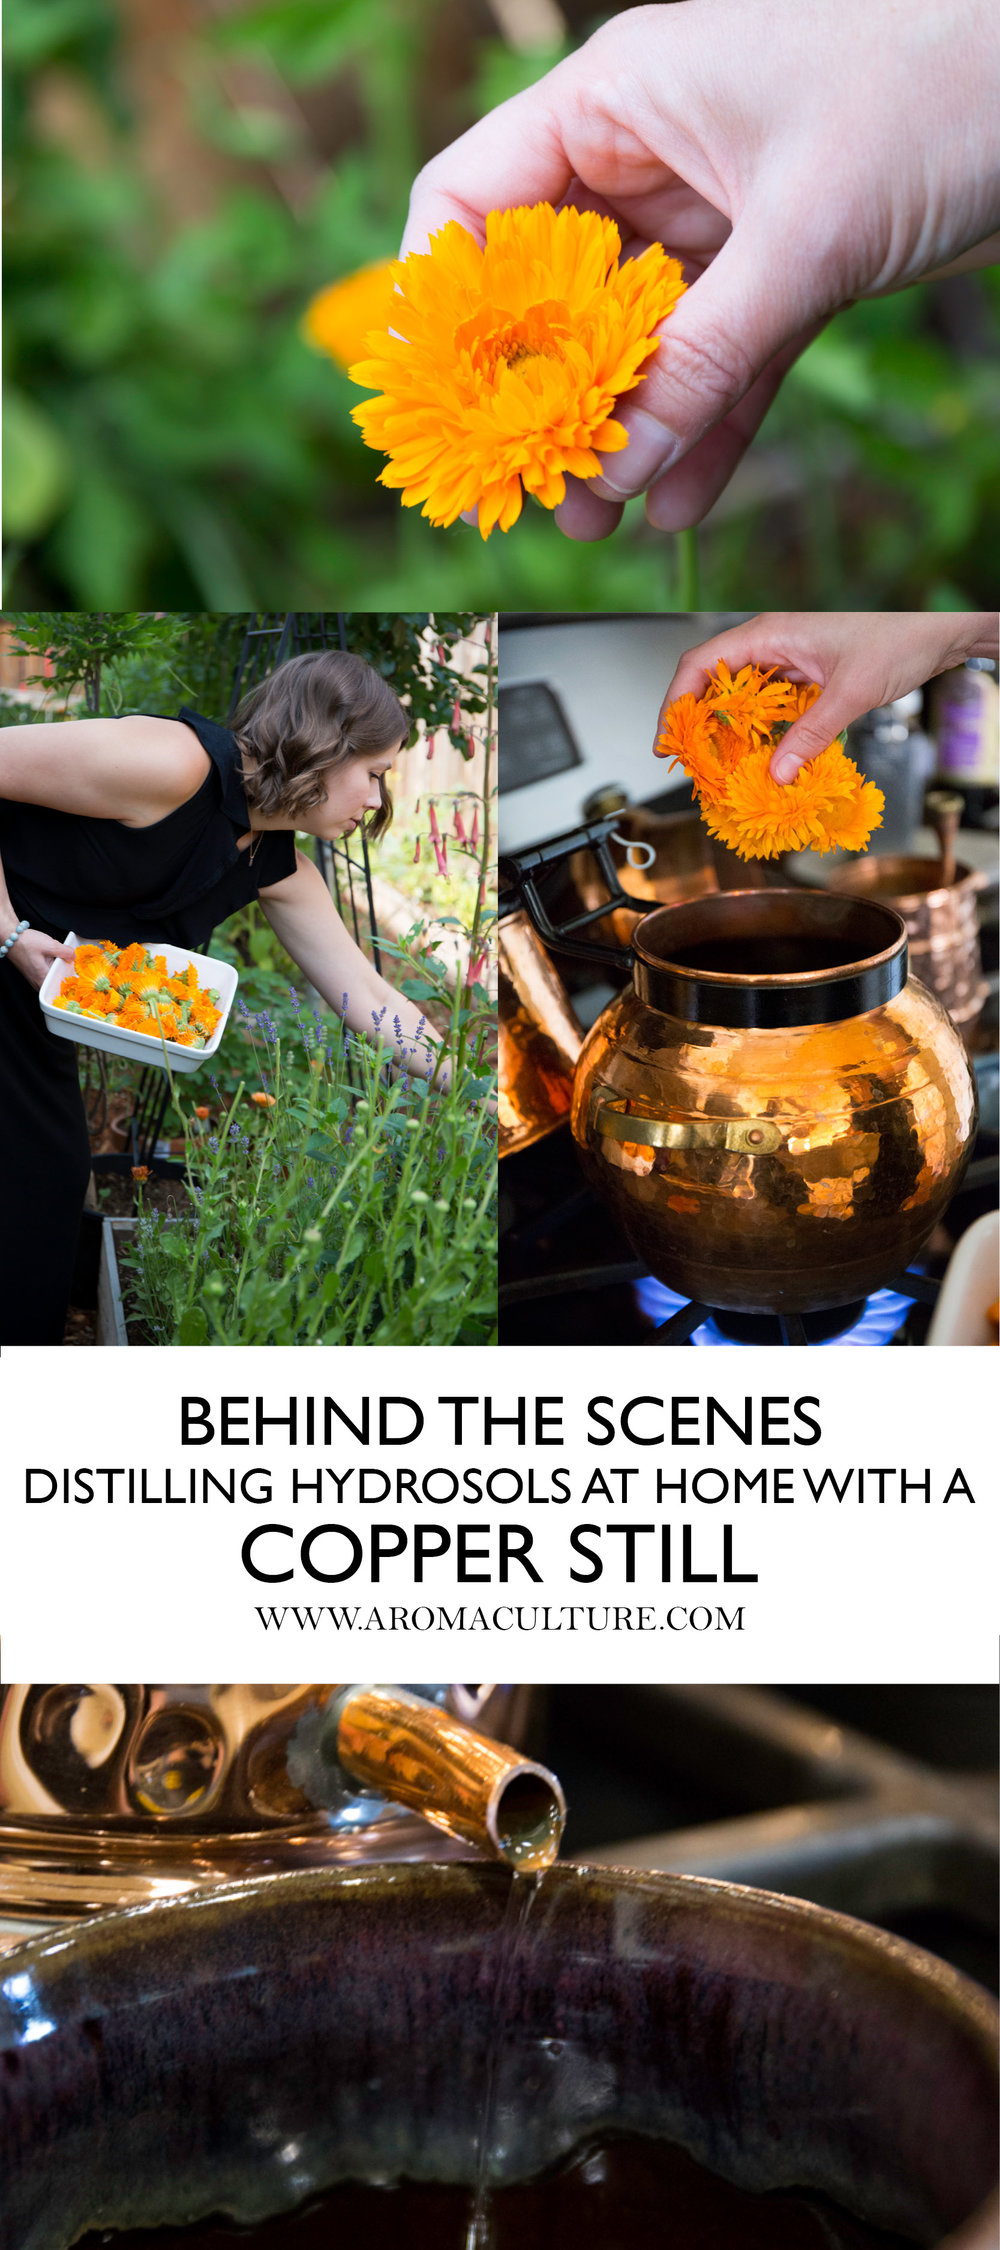 BEHIND THE SCENES DISTILLING HYDROSOLS AT HOME WITH A COPPER STILL AROMACULTURE.jpg